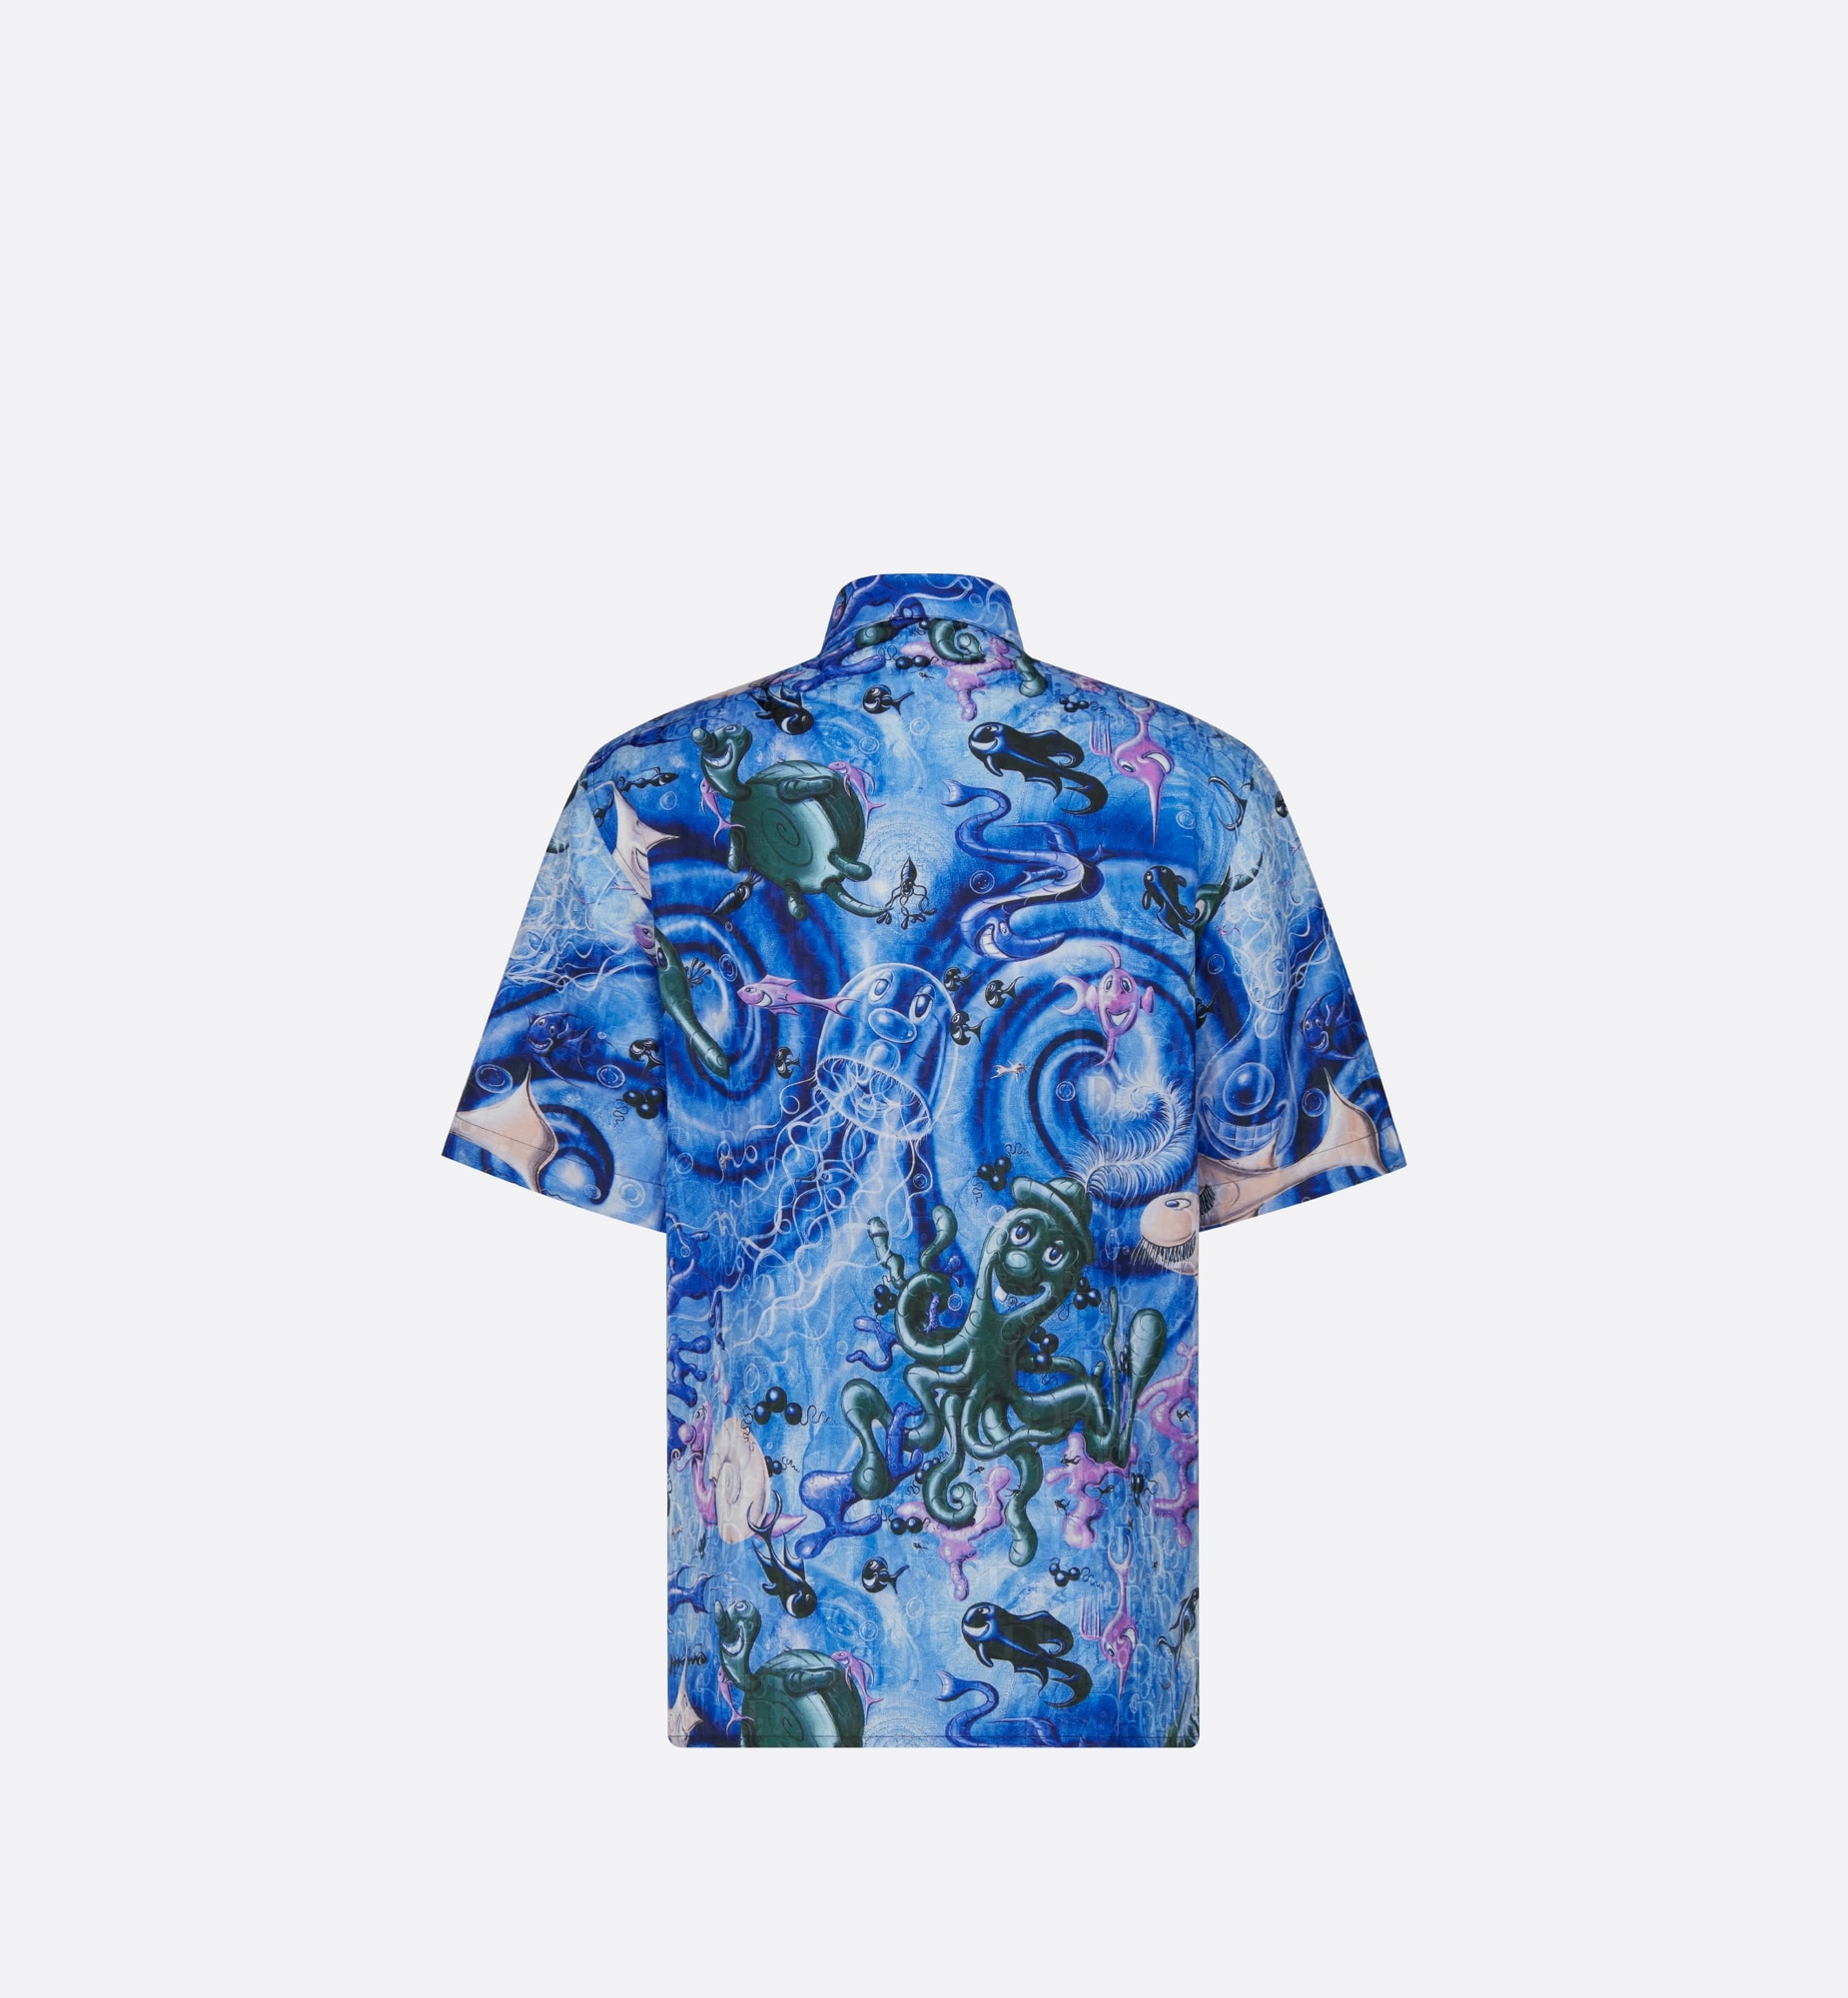 DIOR AND KENNY SCHARF Shirt Back view Open gallery